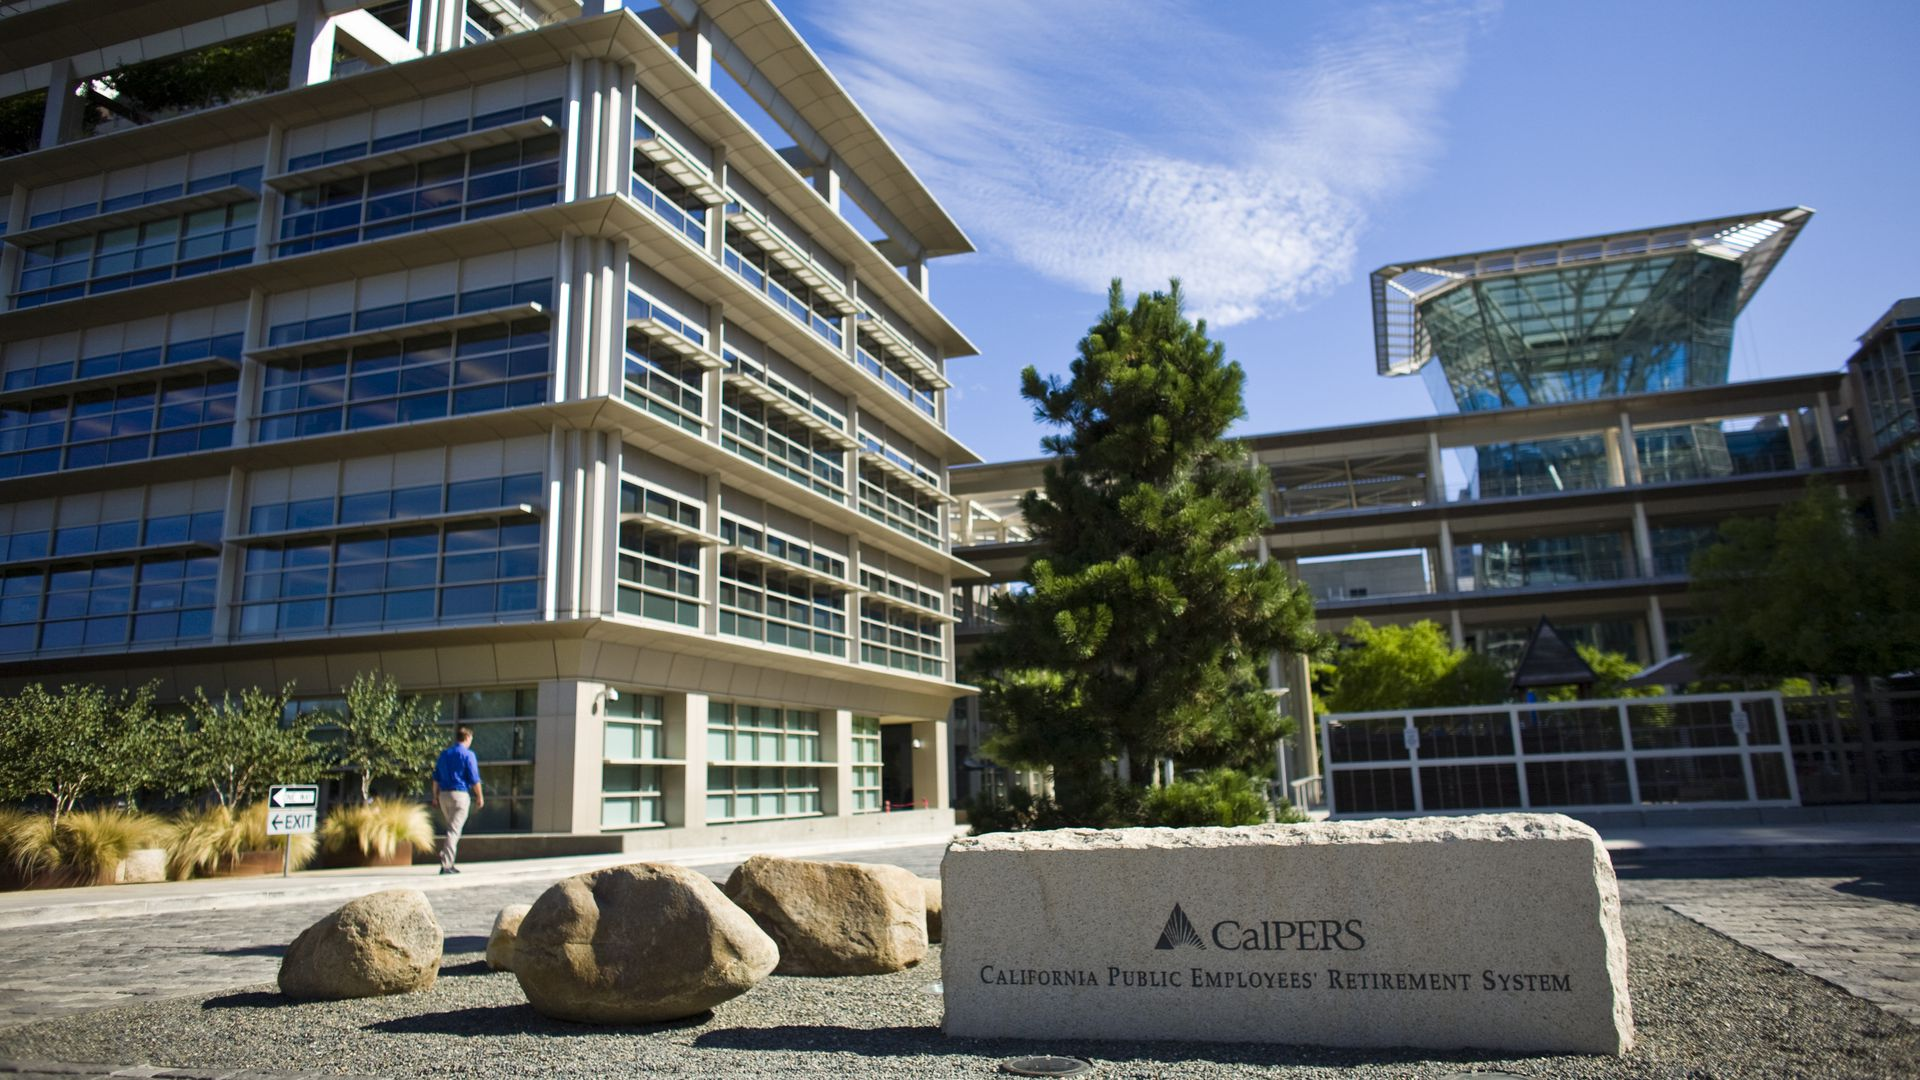 CalPERS headquarters in Sacramento.